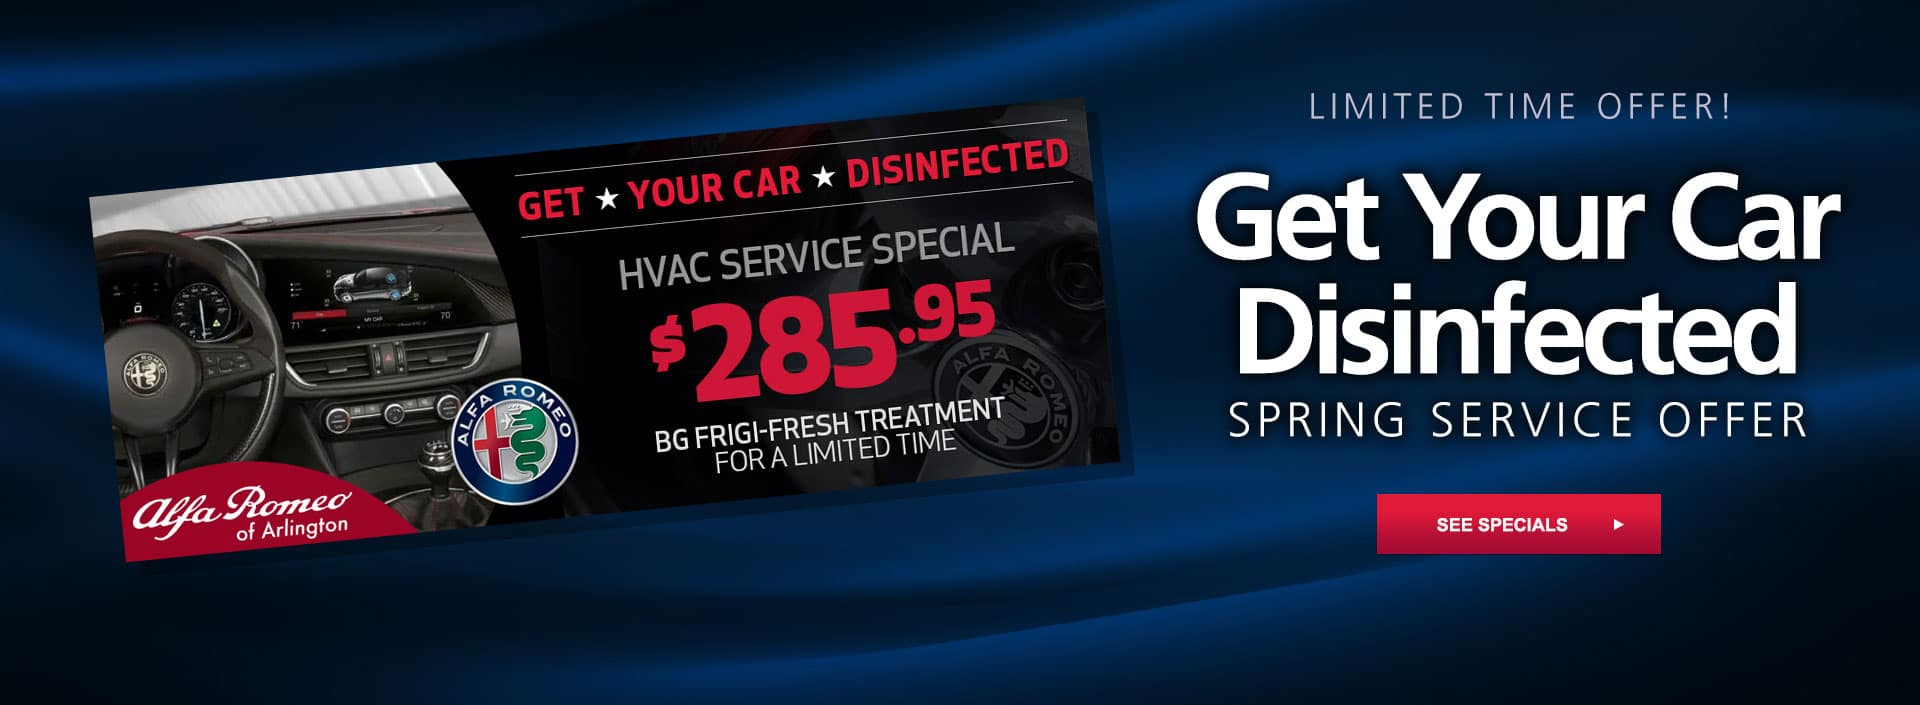 get your car disinfected special